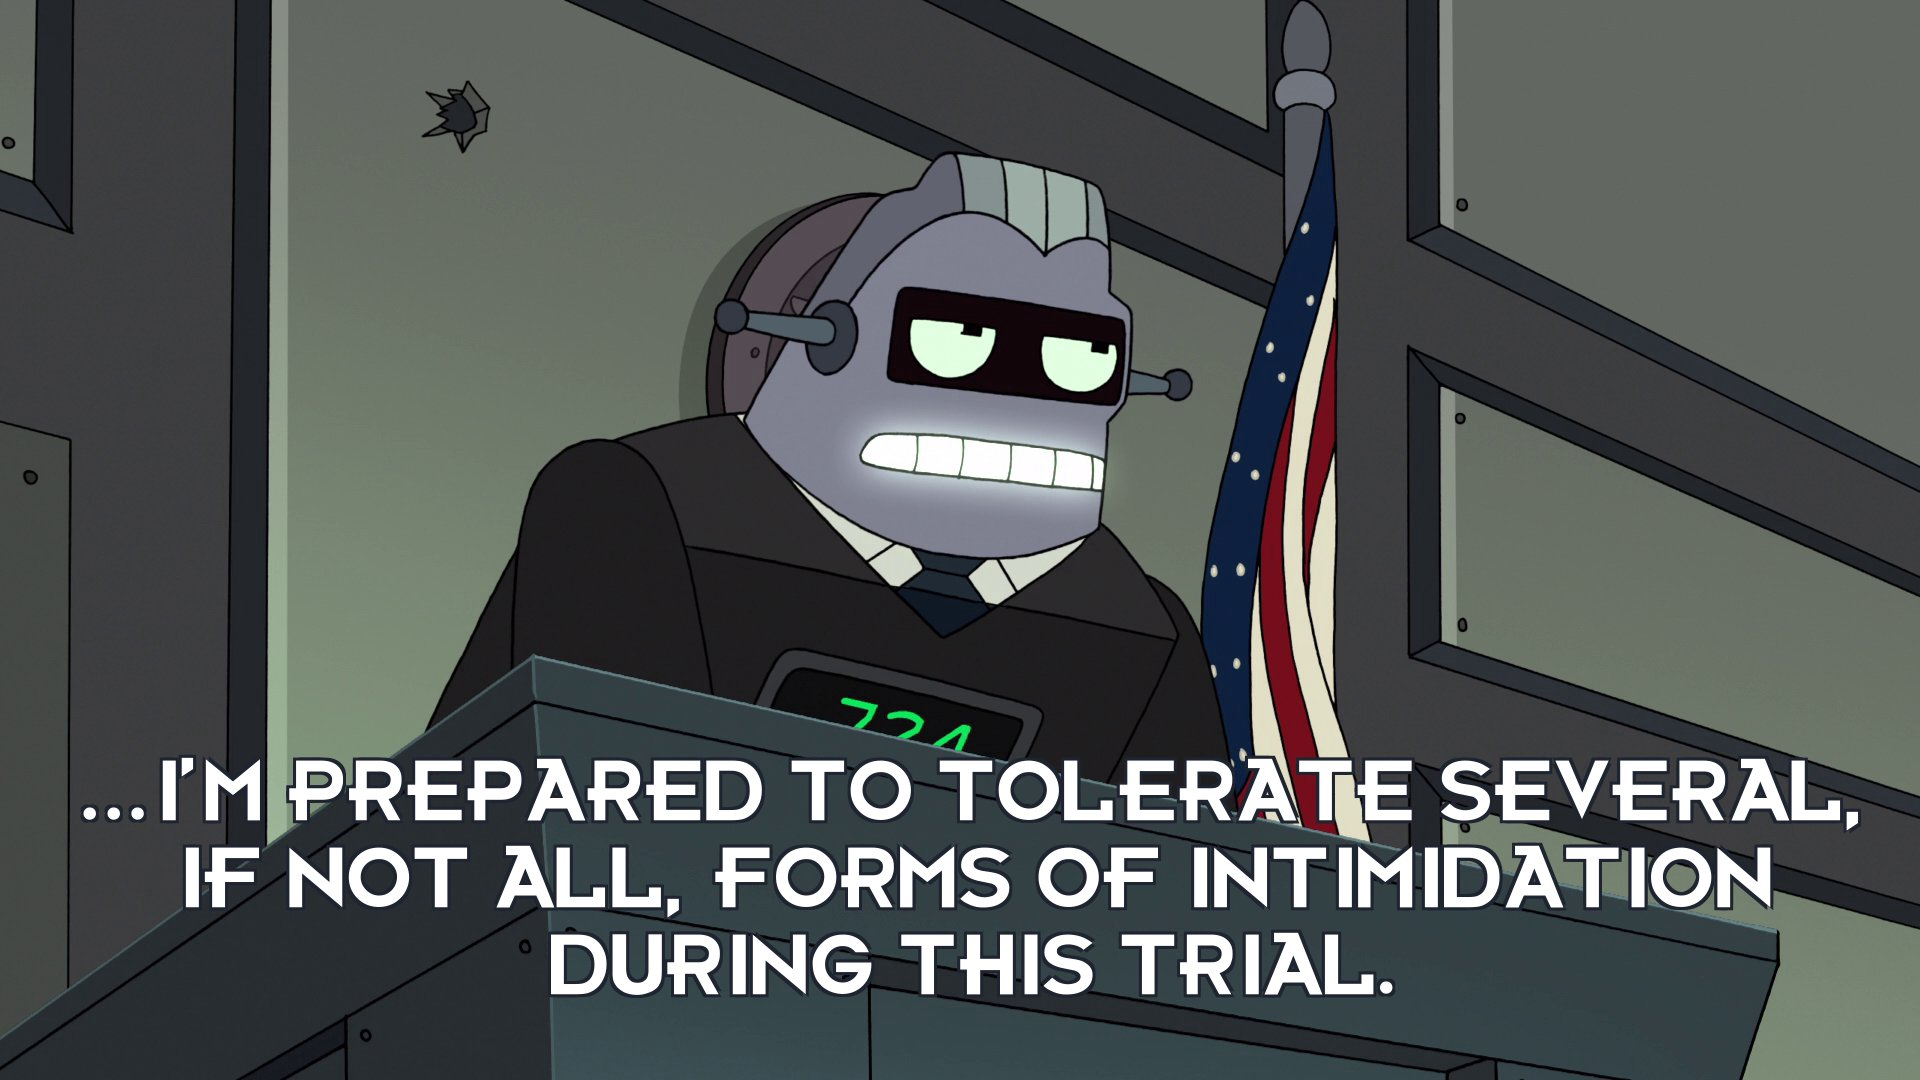 Judge 724: ...I'm prepared to tolerate several, if not all, forms of intimidation during this trial.